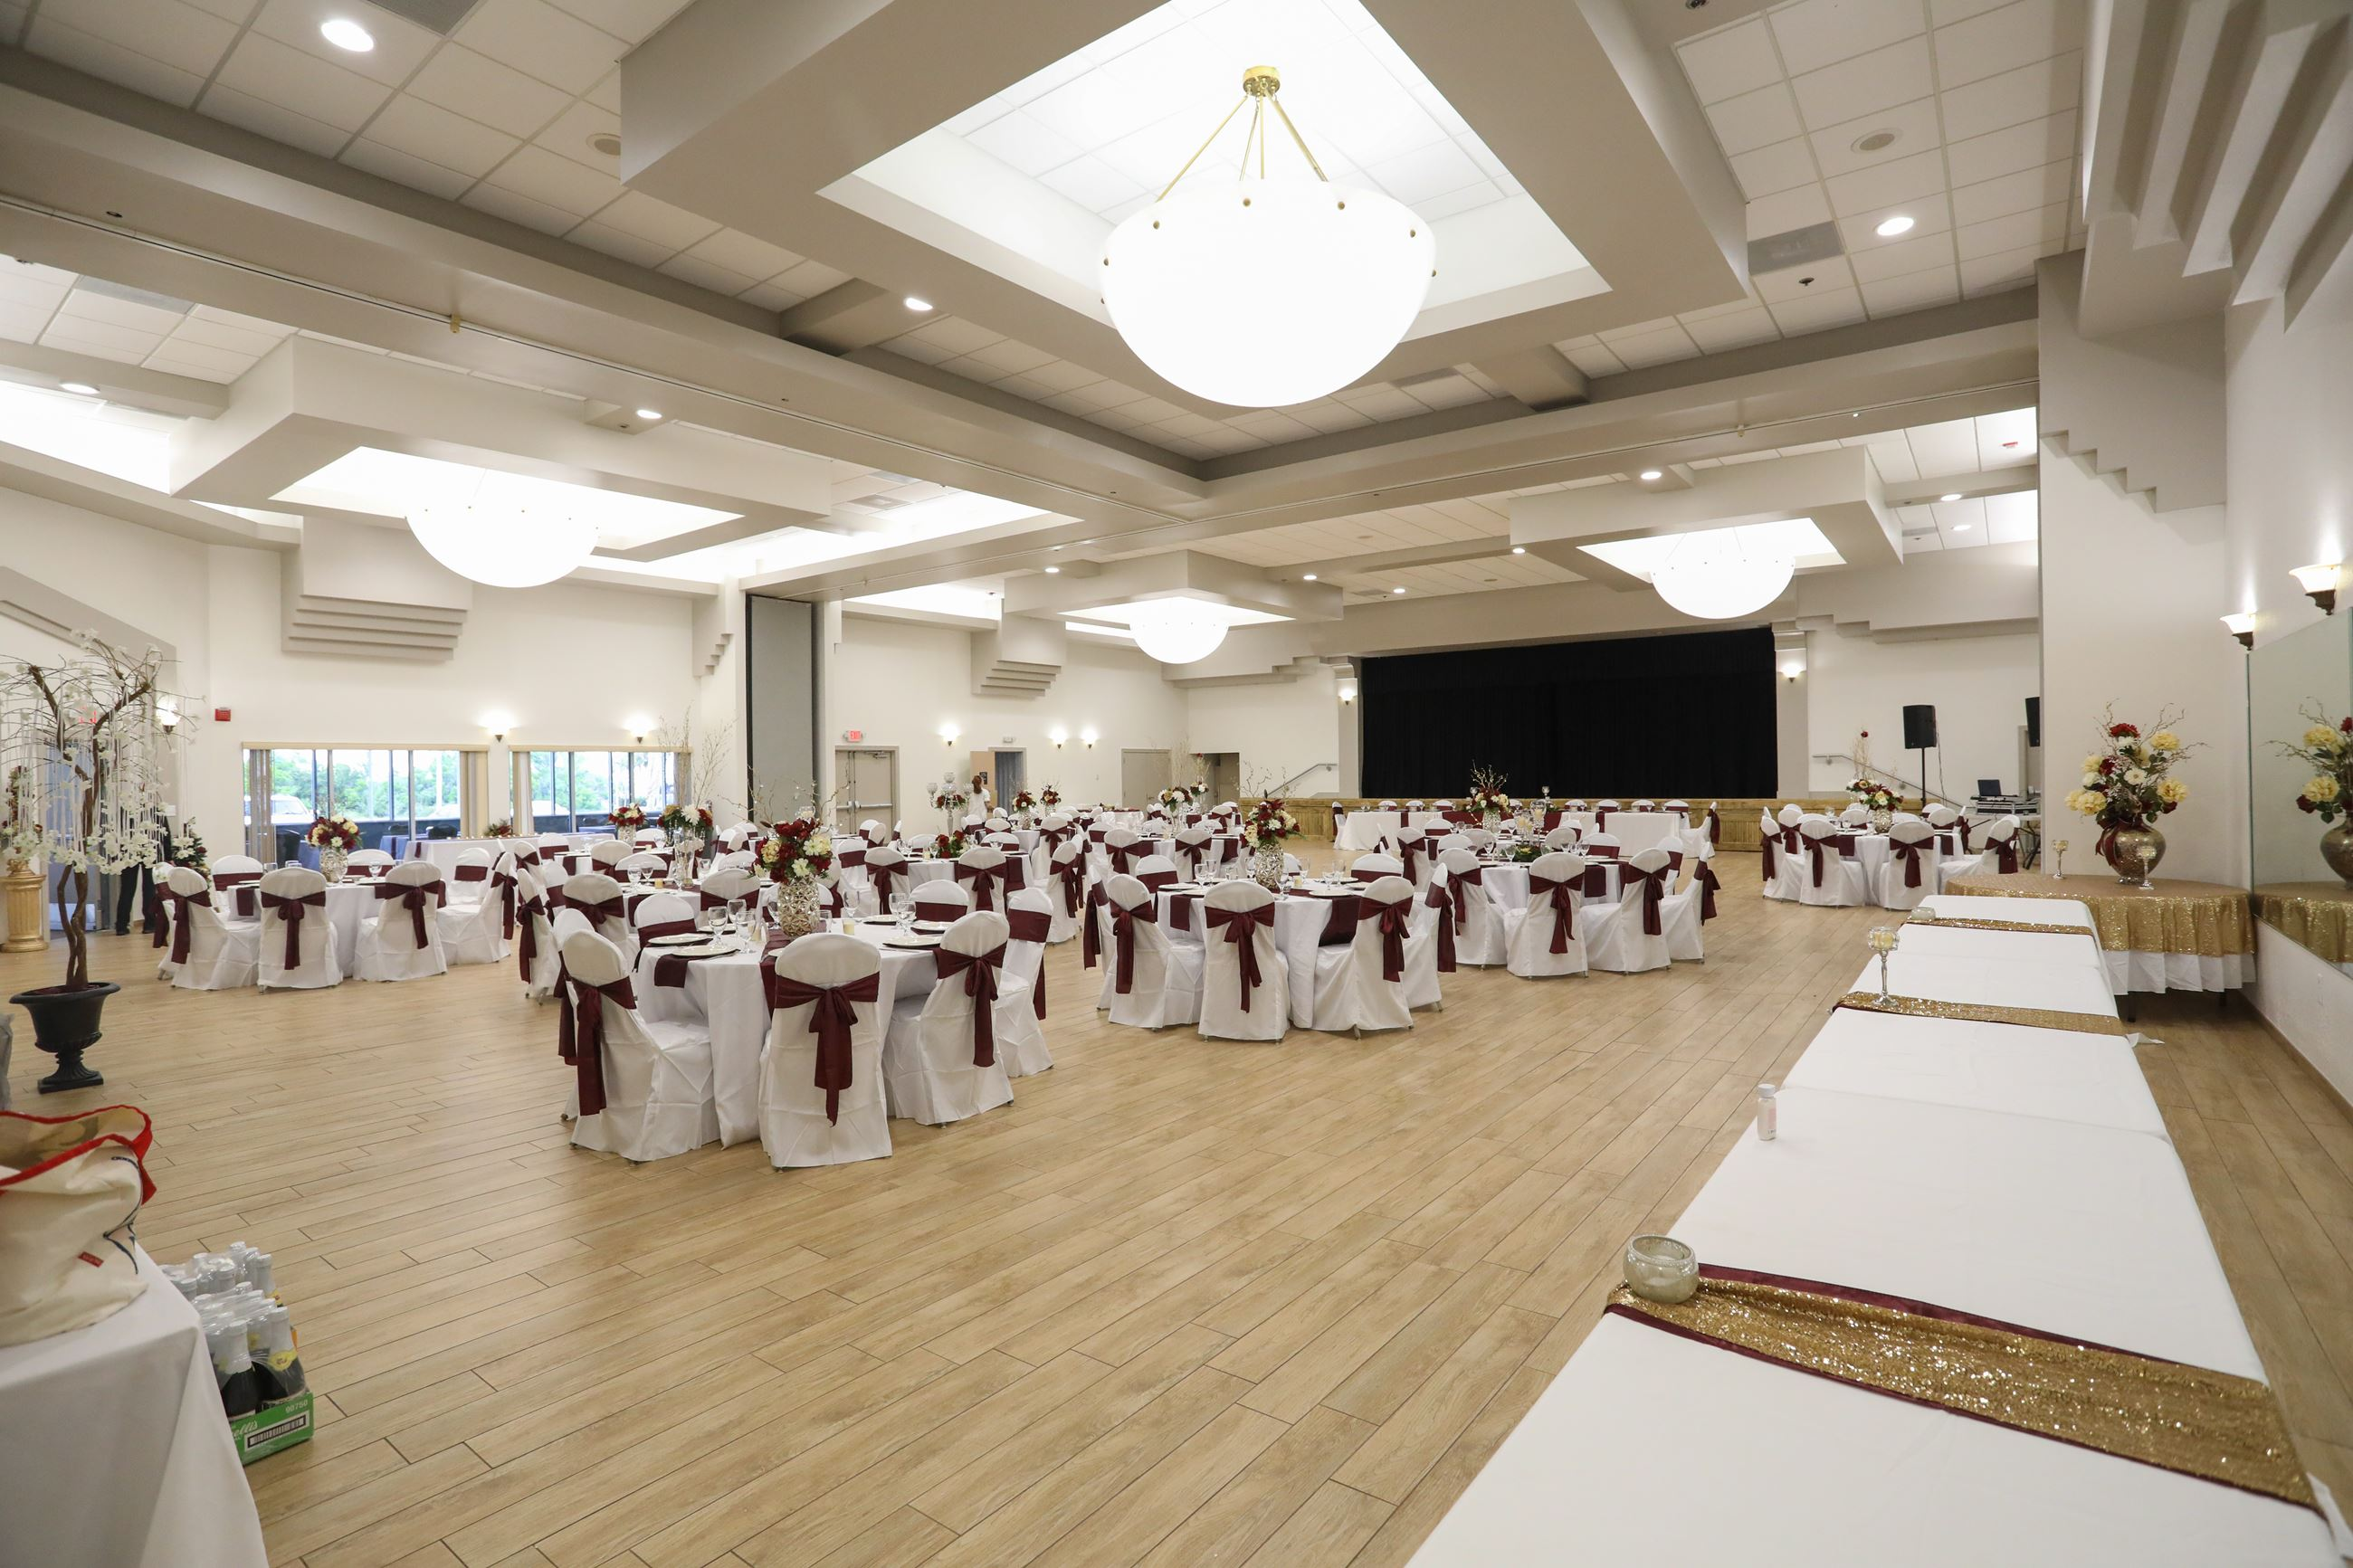 Banquet Facilities set up for event in December of 2018